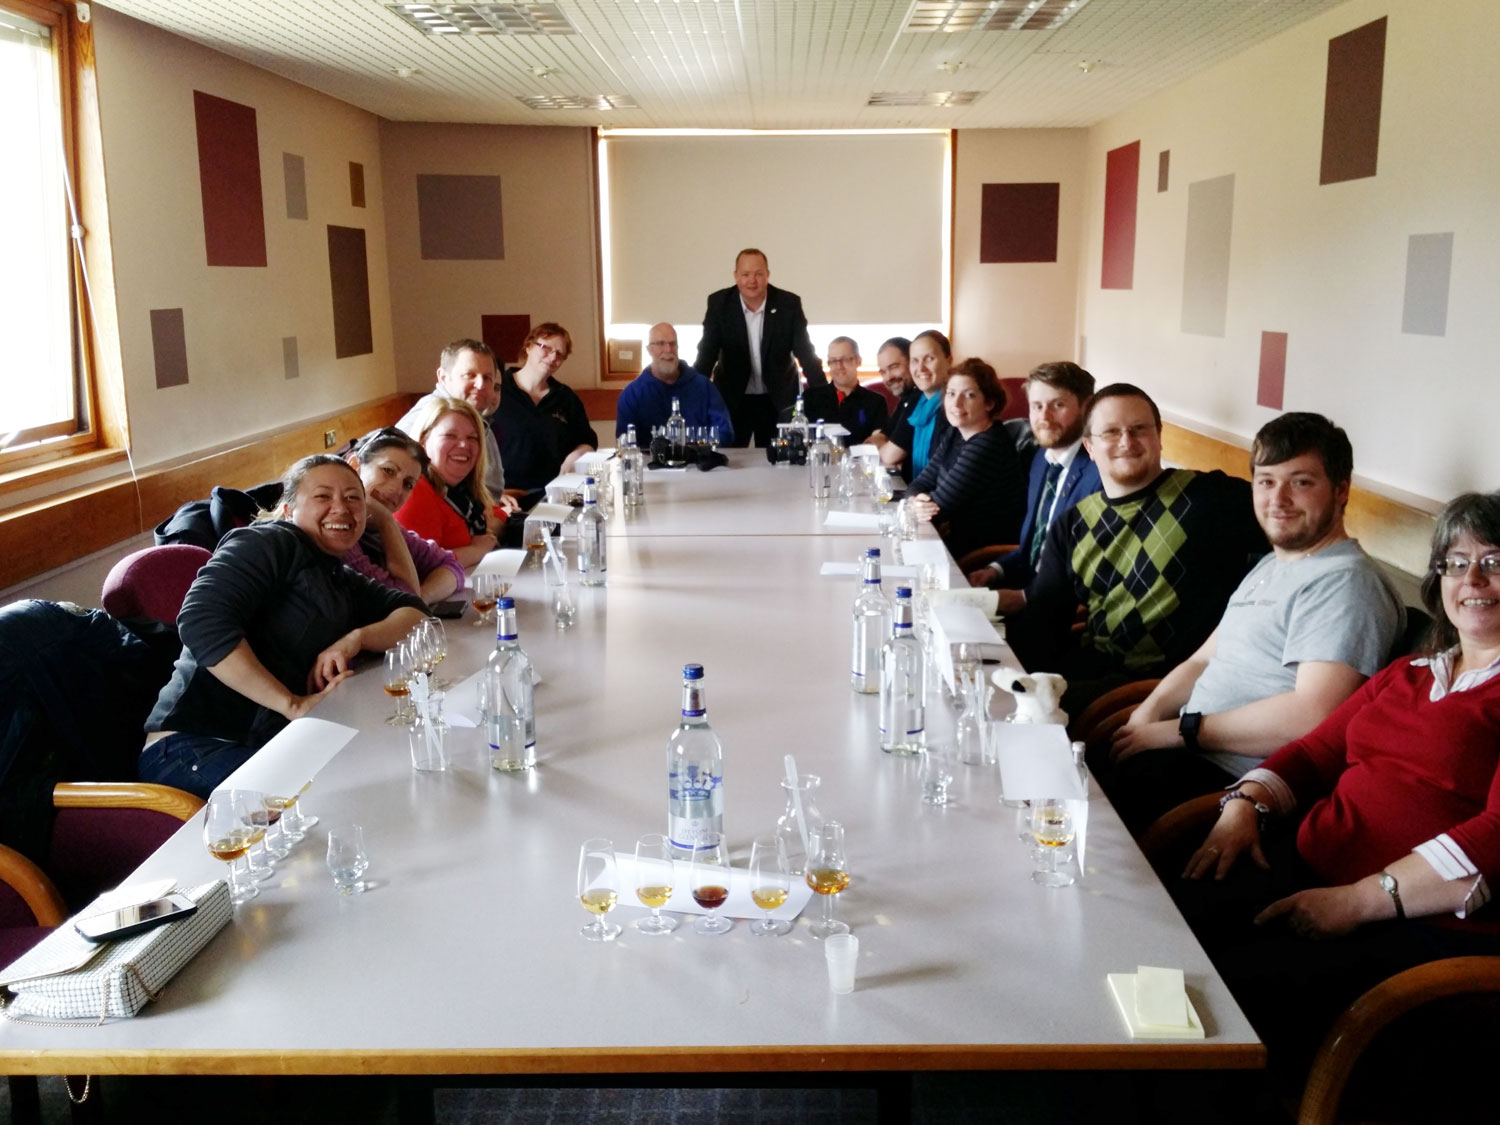 Auchroisk #whiskyfabric group picture